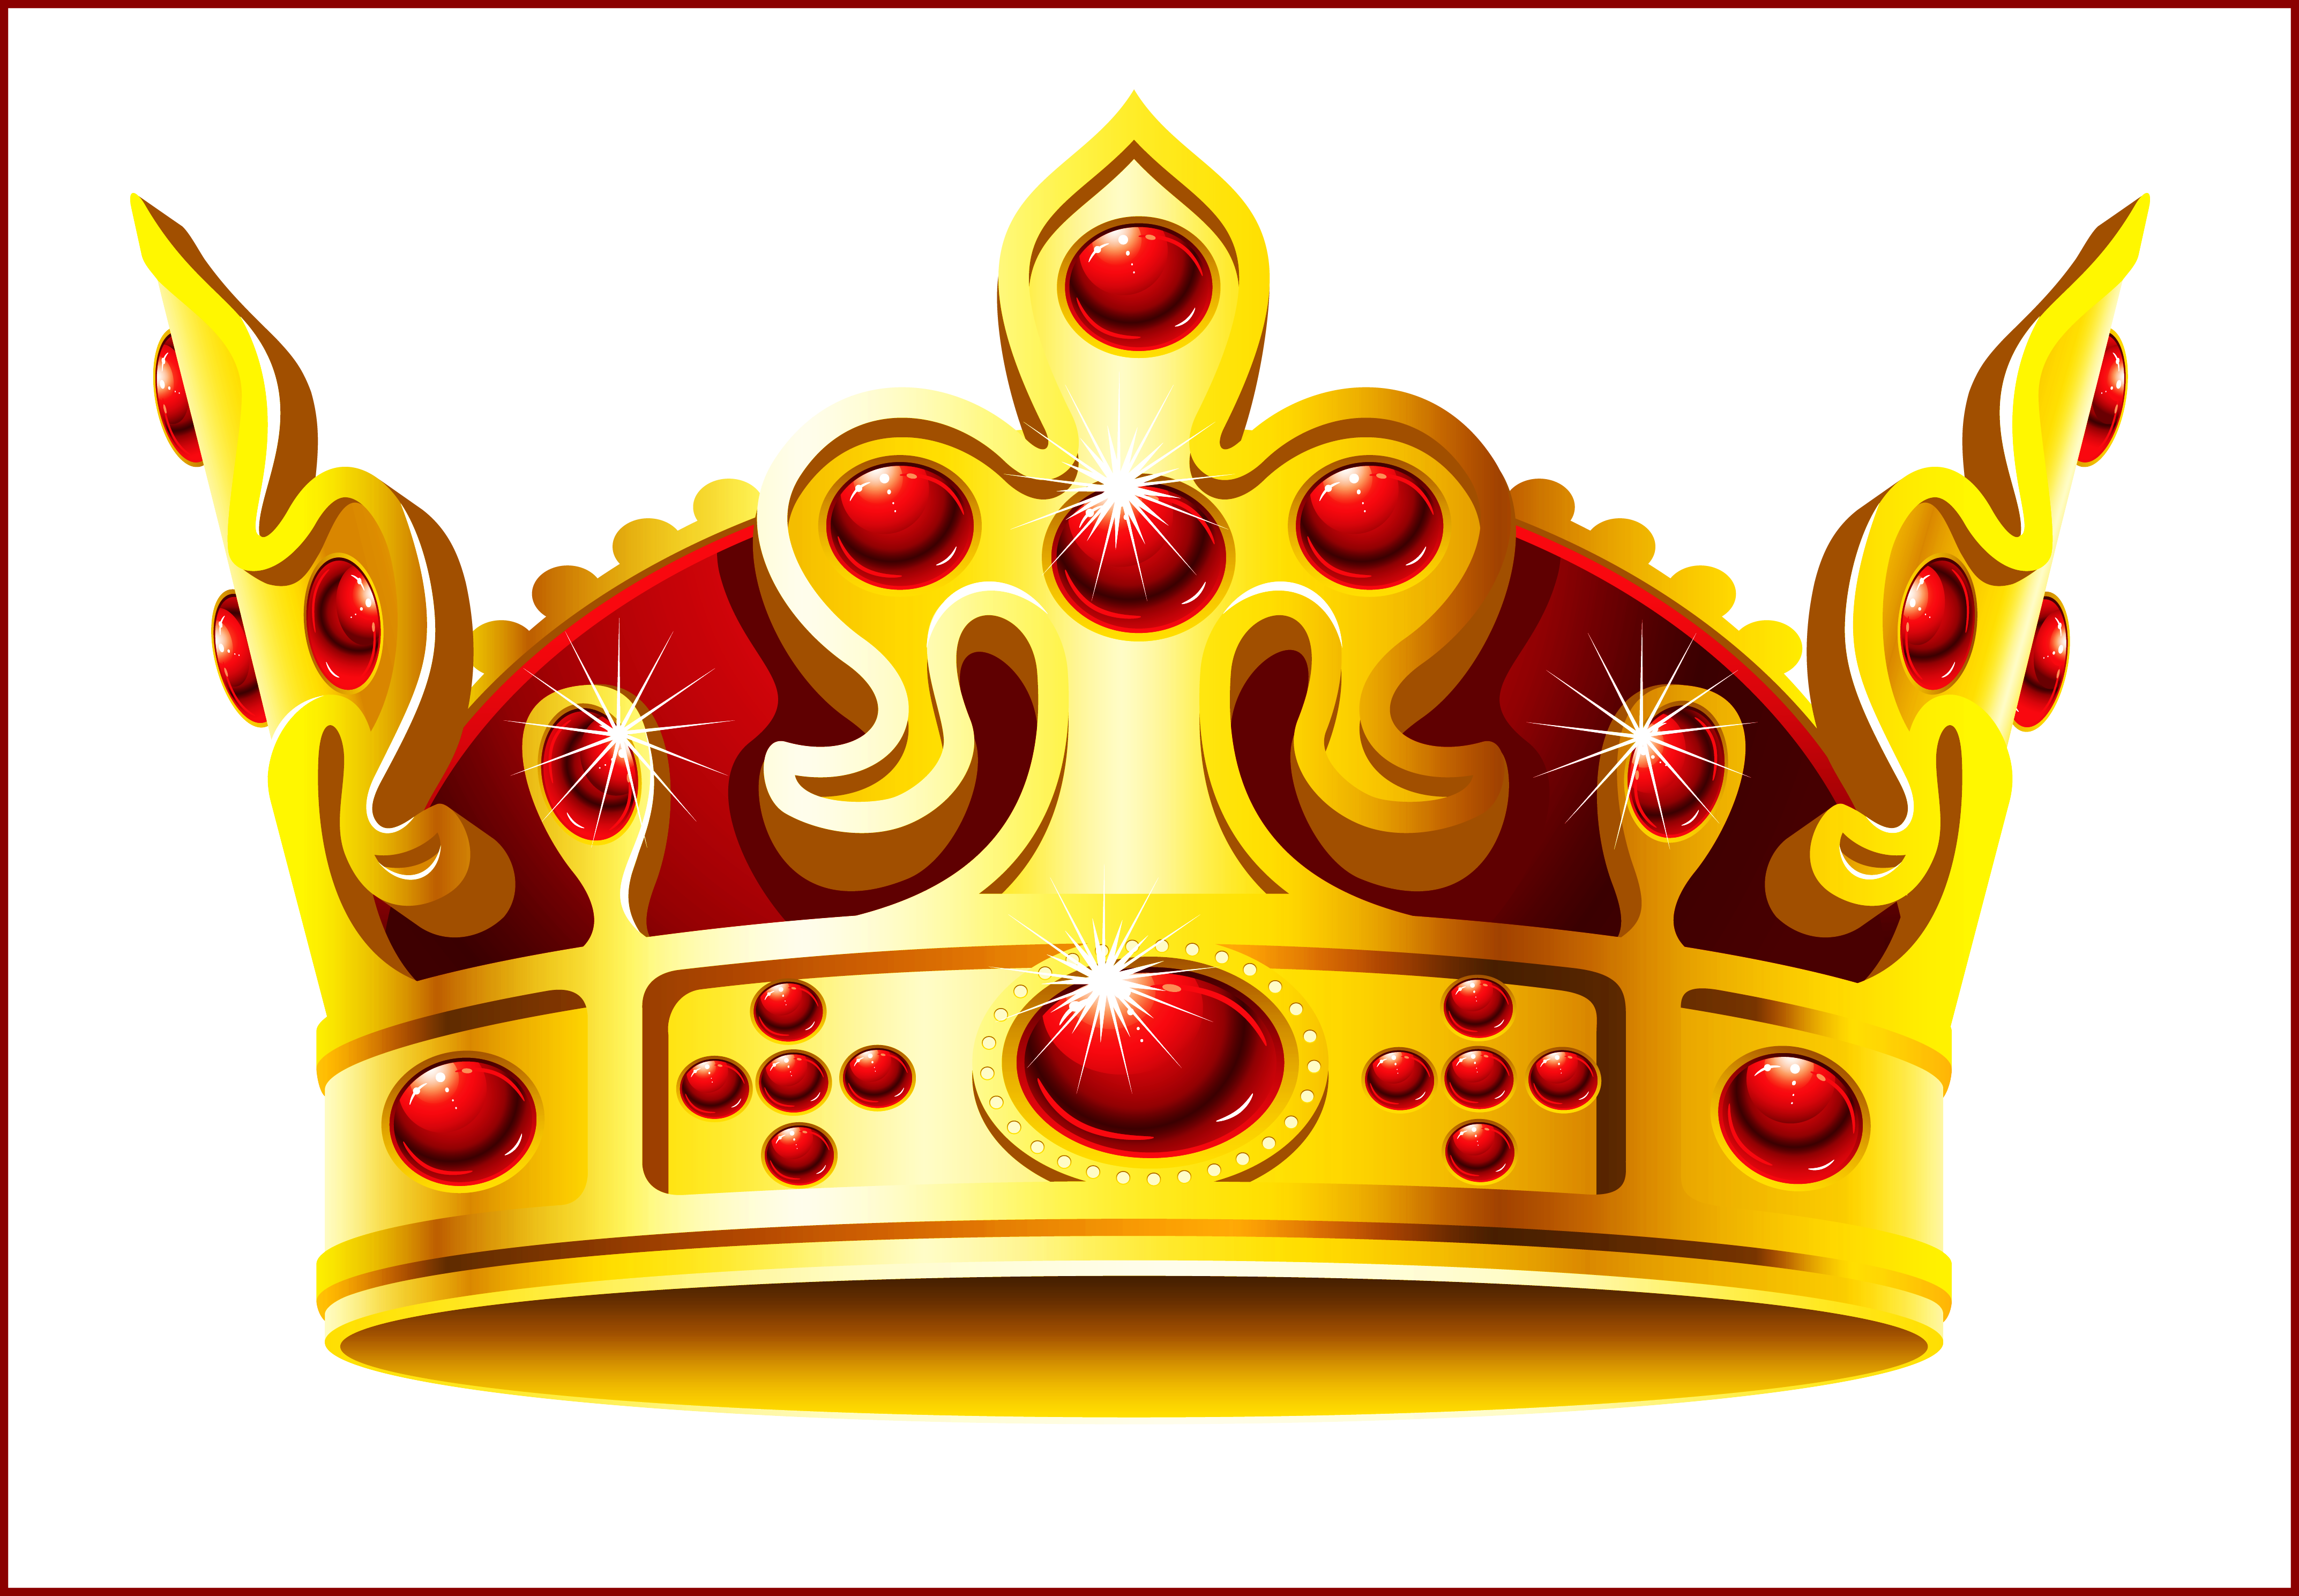 King crown clipart svg download 5 Ideas of Lion With Crown Clipart - About Lion Animal svg download